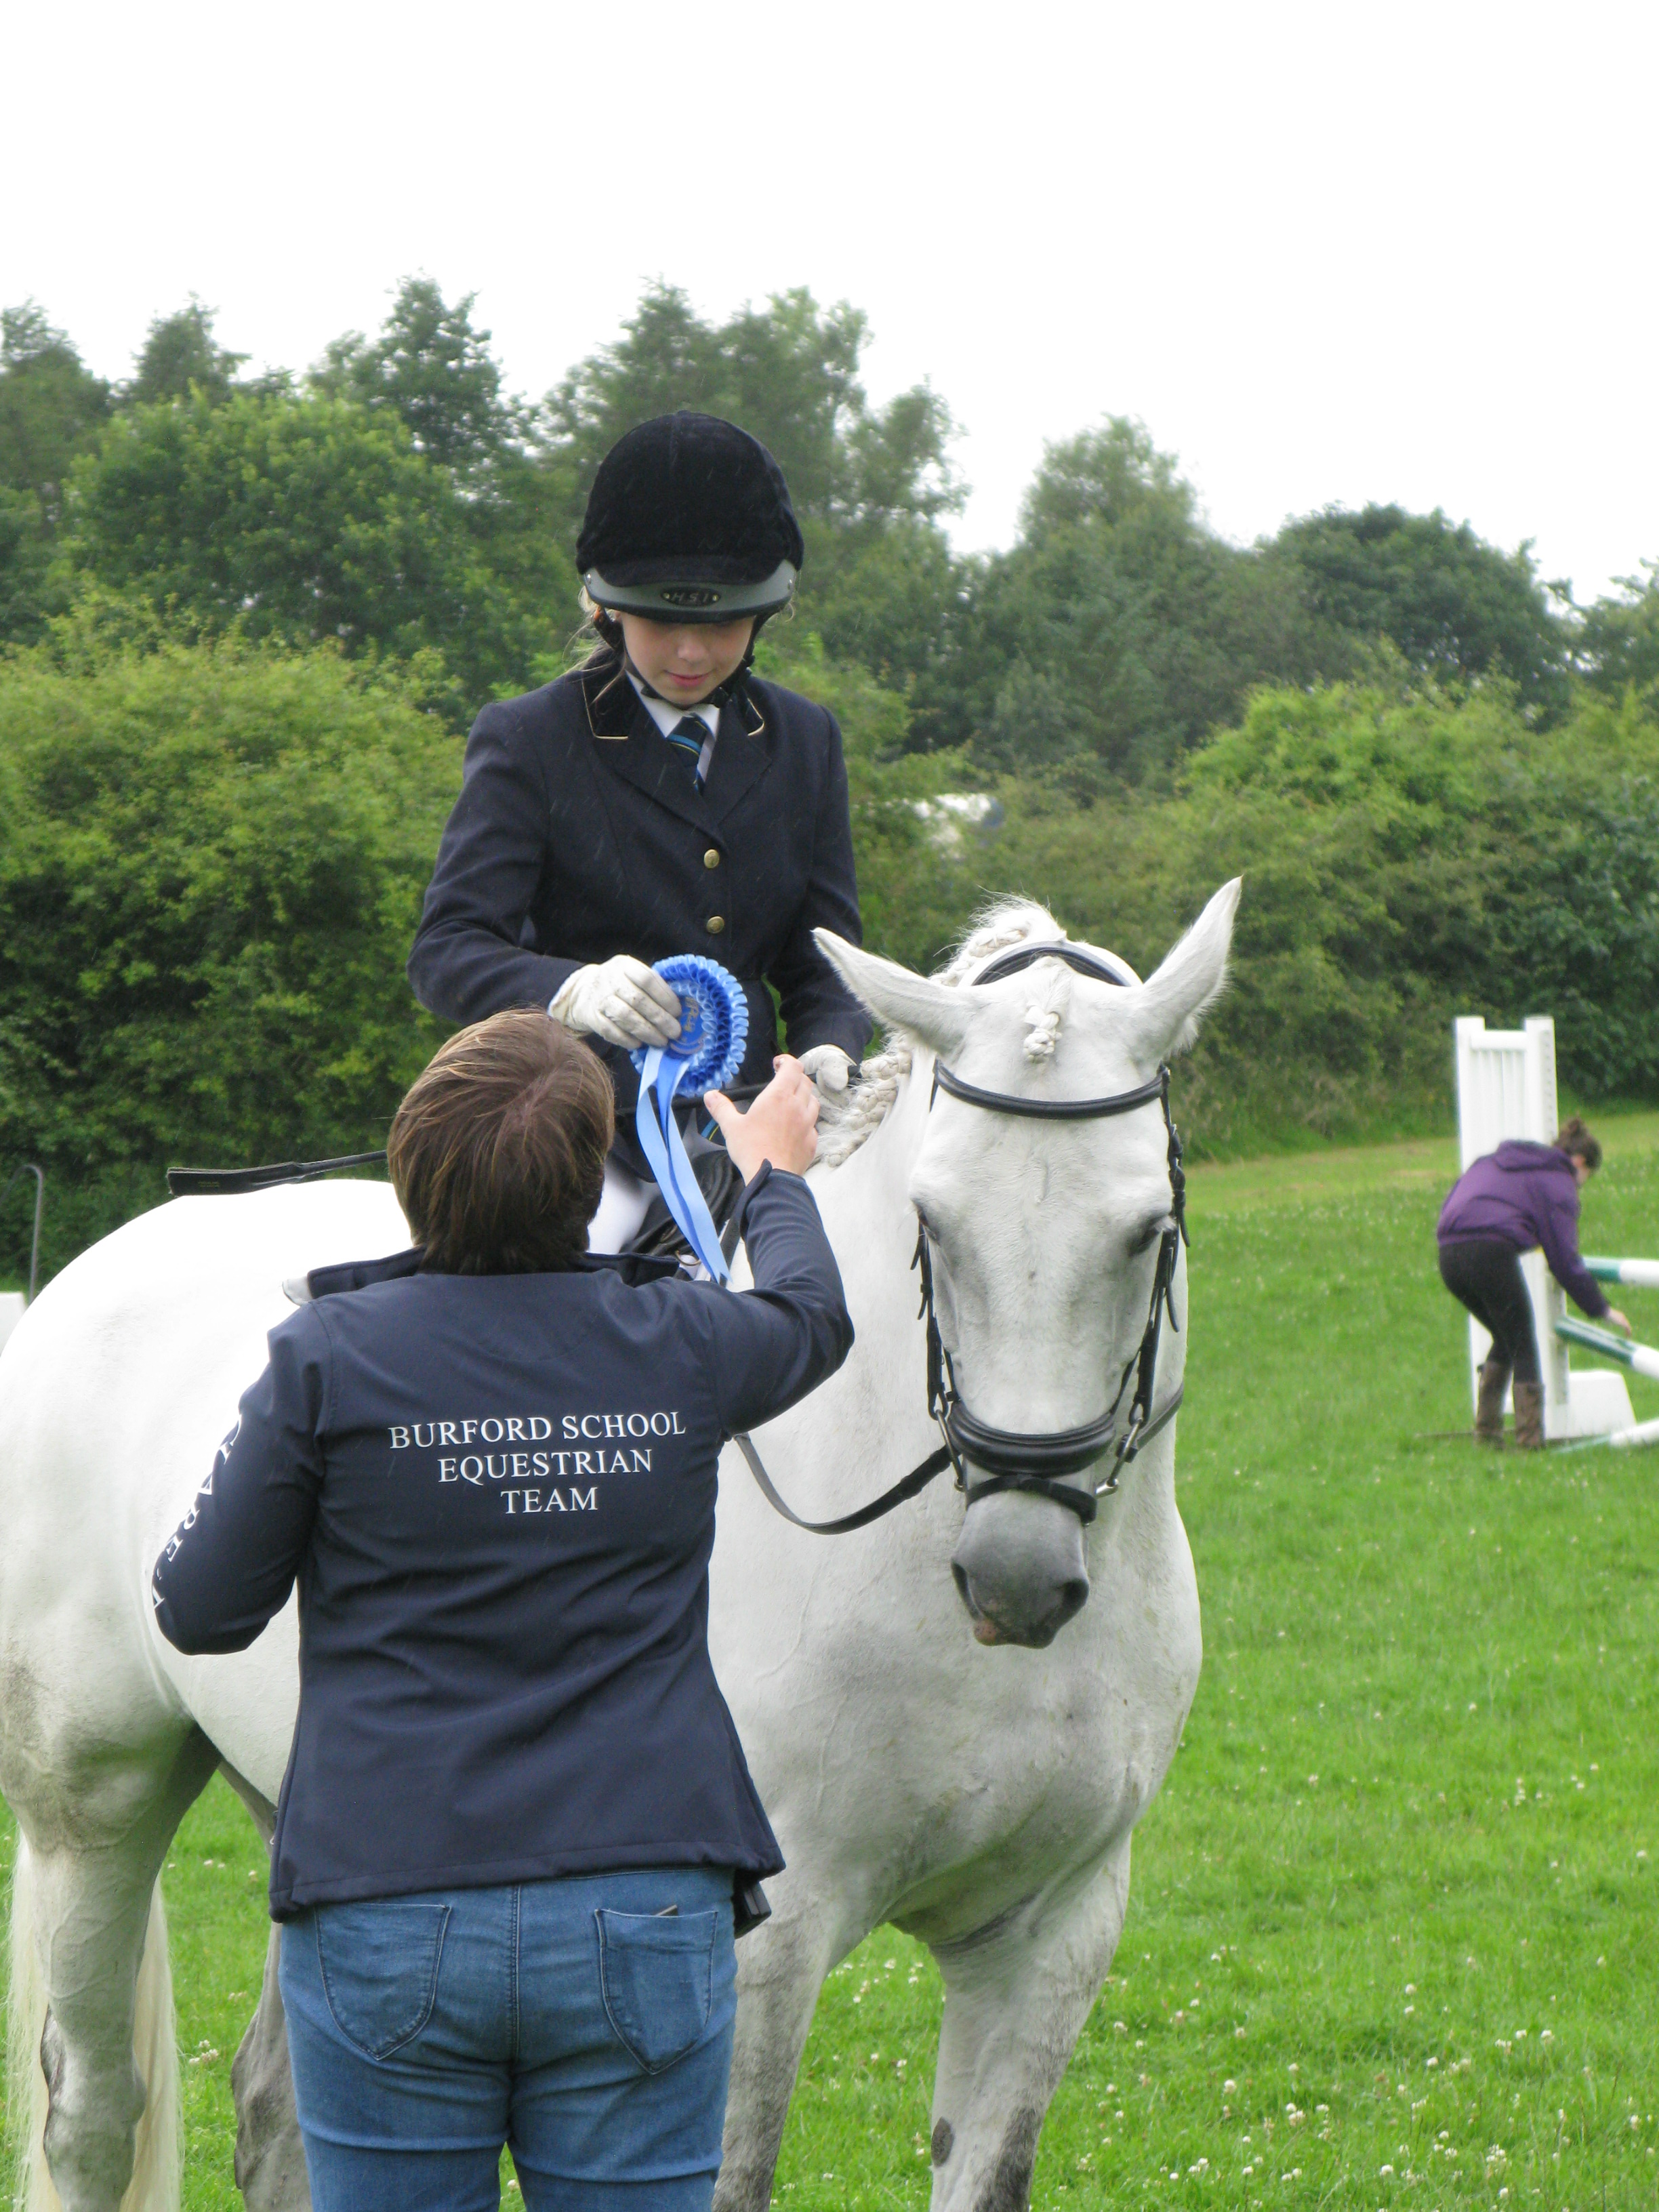 Equestrian Team Burford School